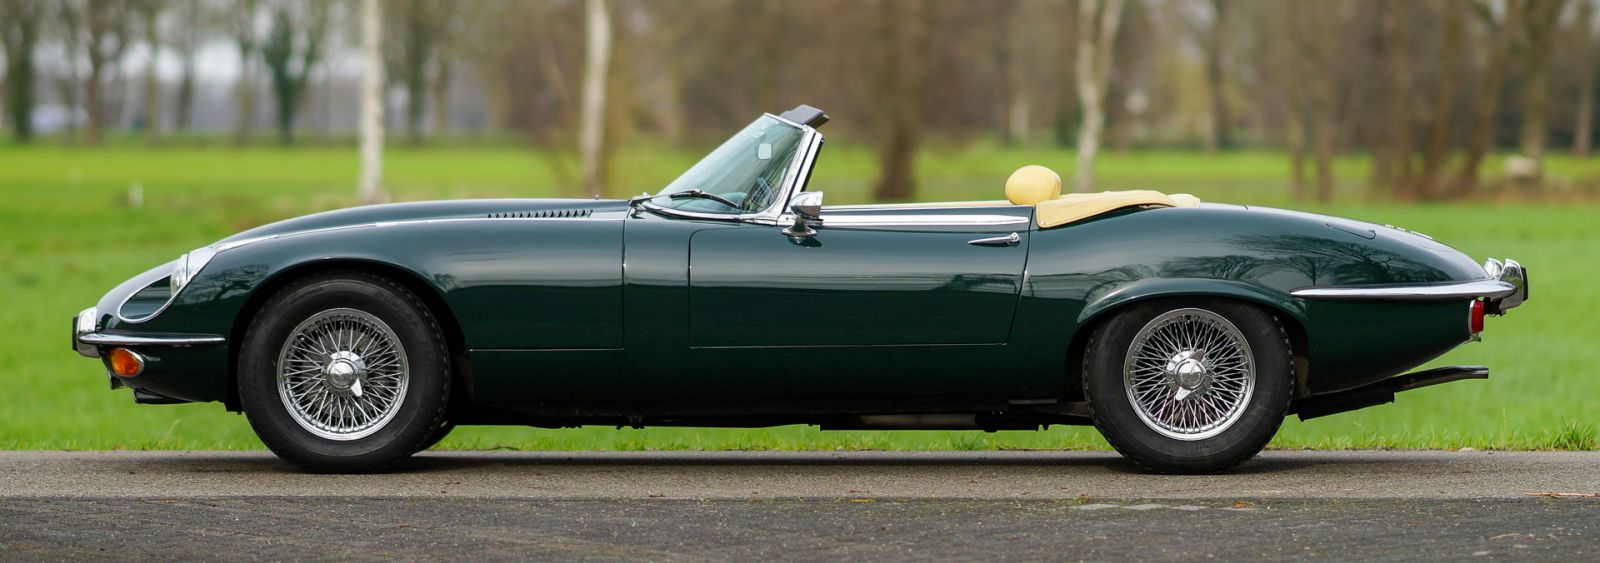 Jaguar E-type V12 convertible, 1973